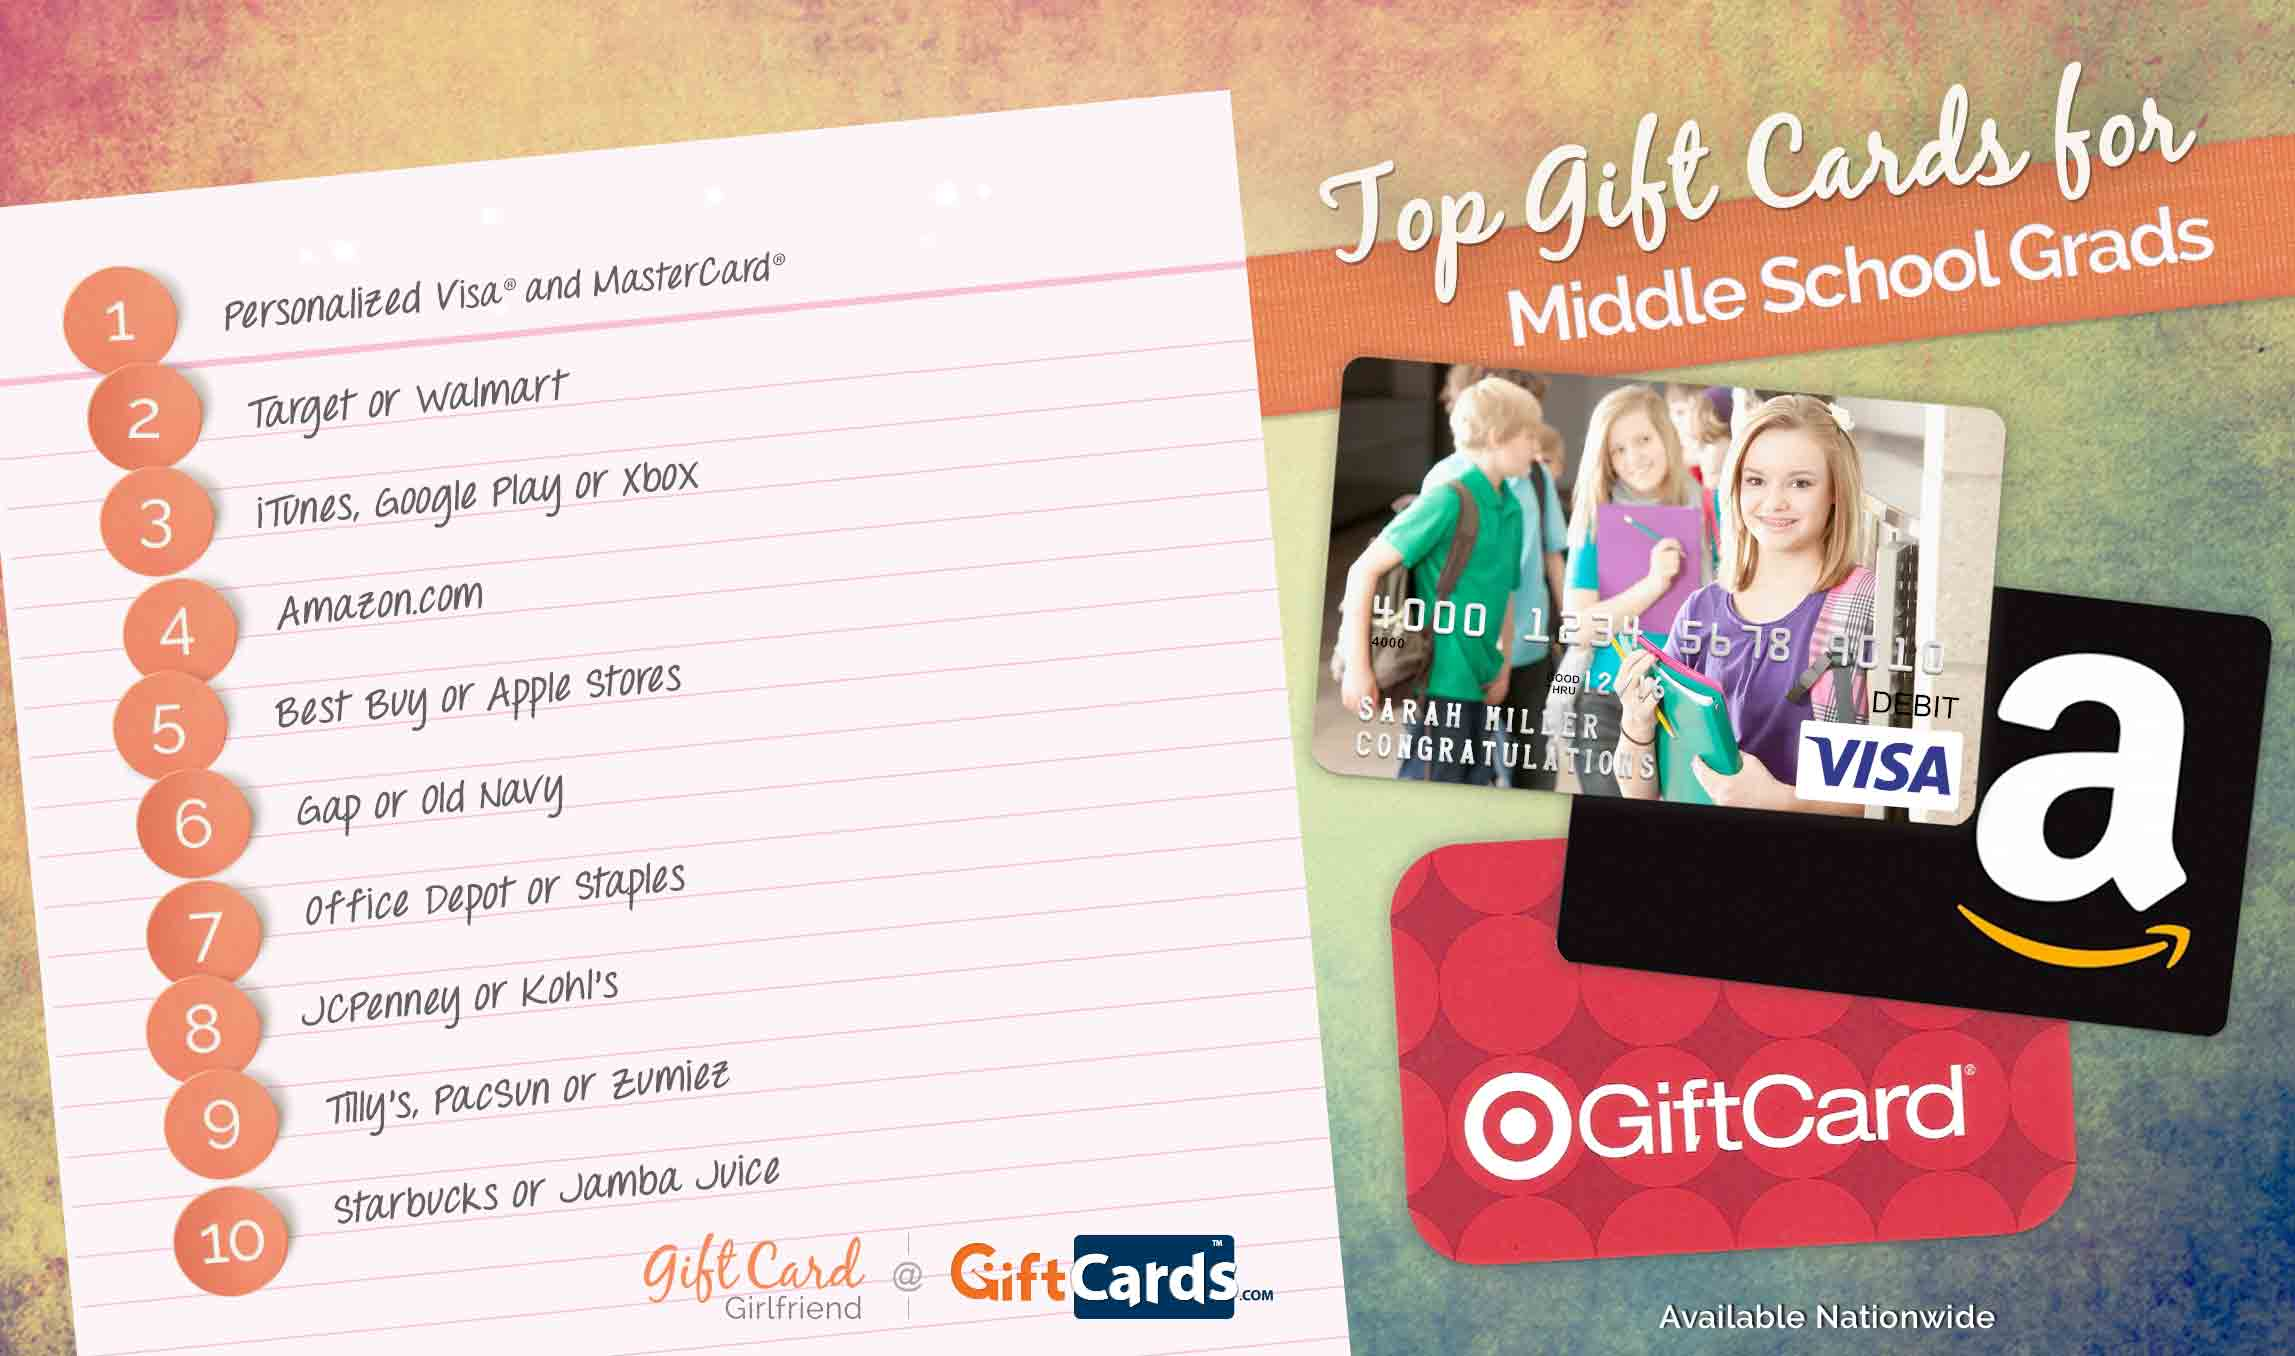 top gift cards for middle school graduates